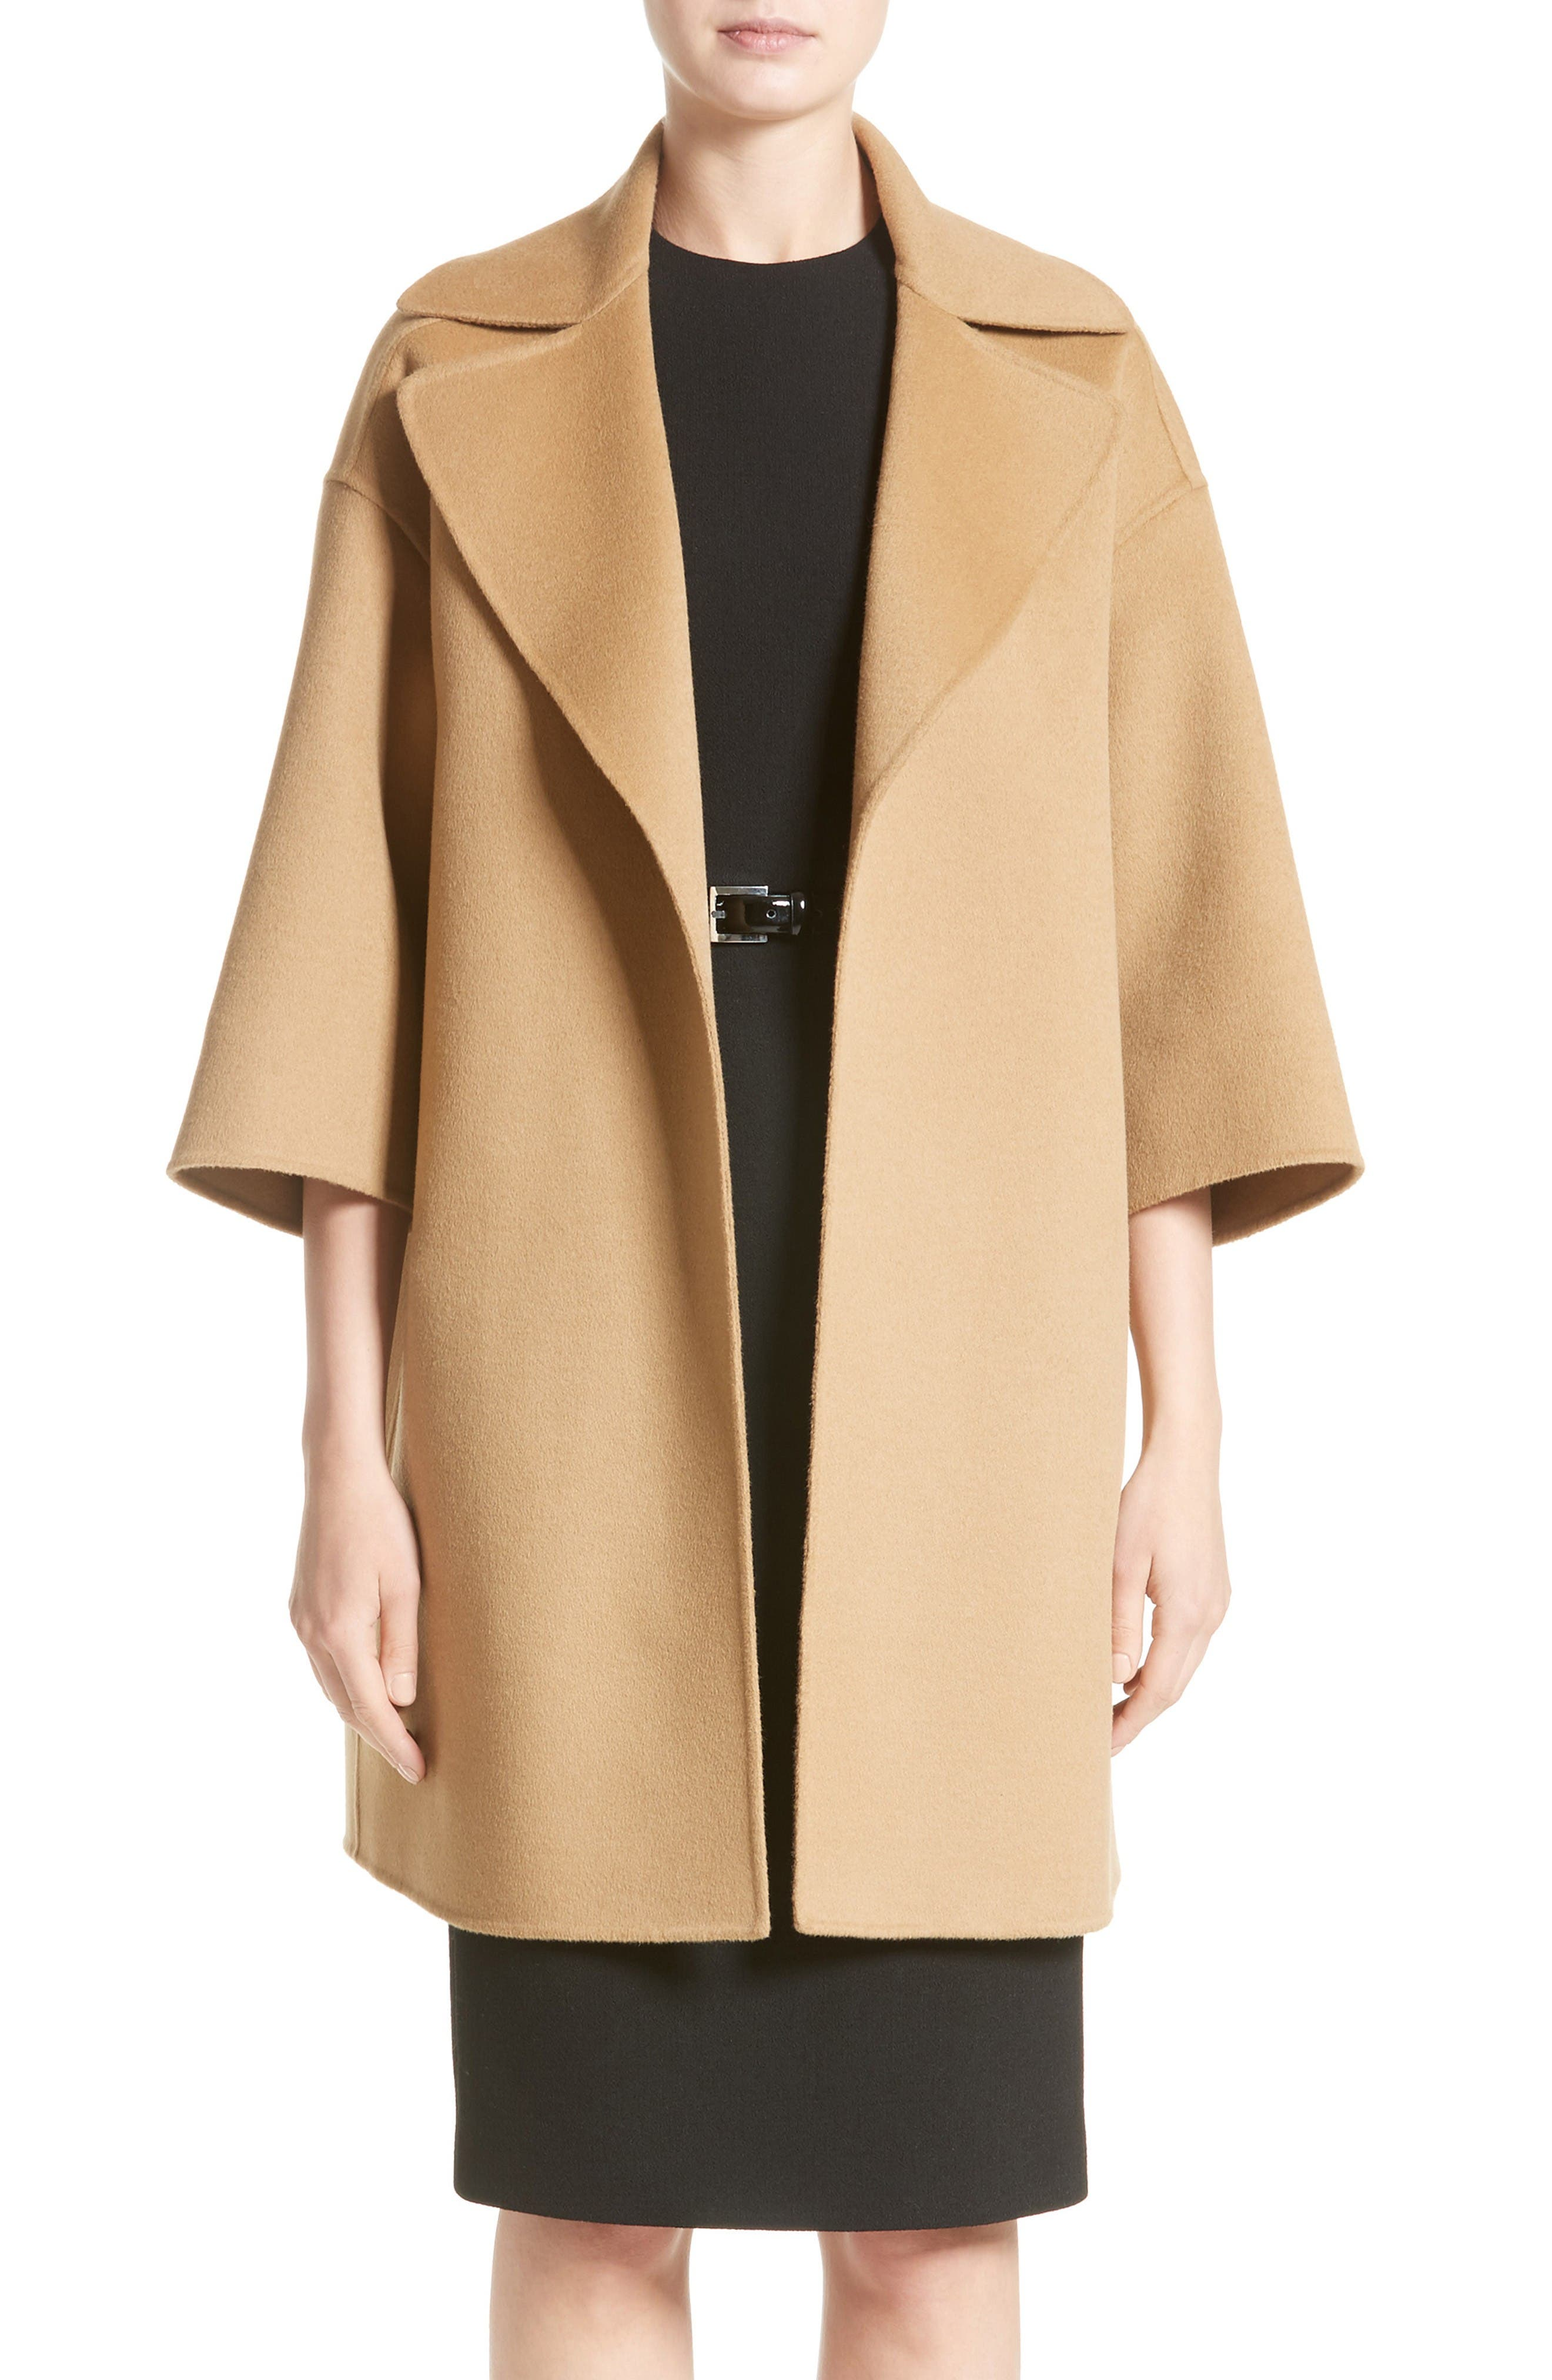 Michael Kors Wool Blend Coat